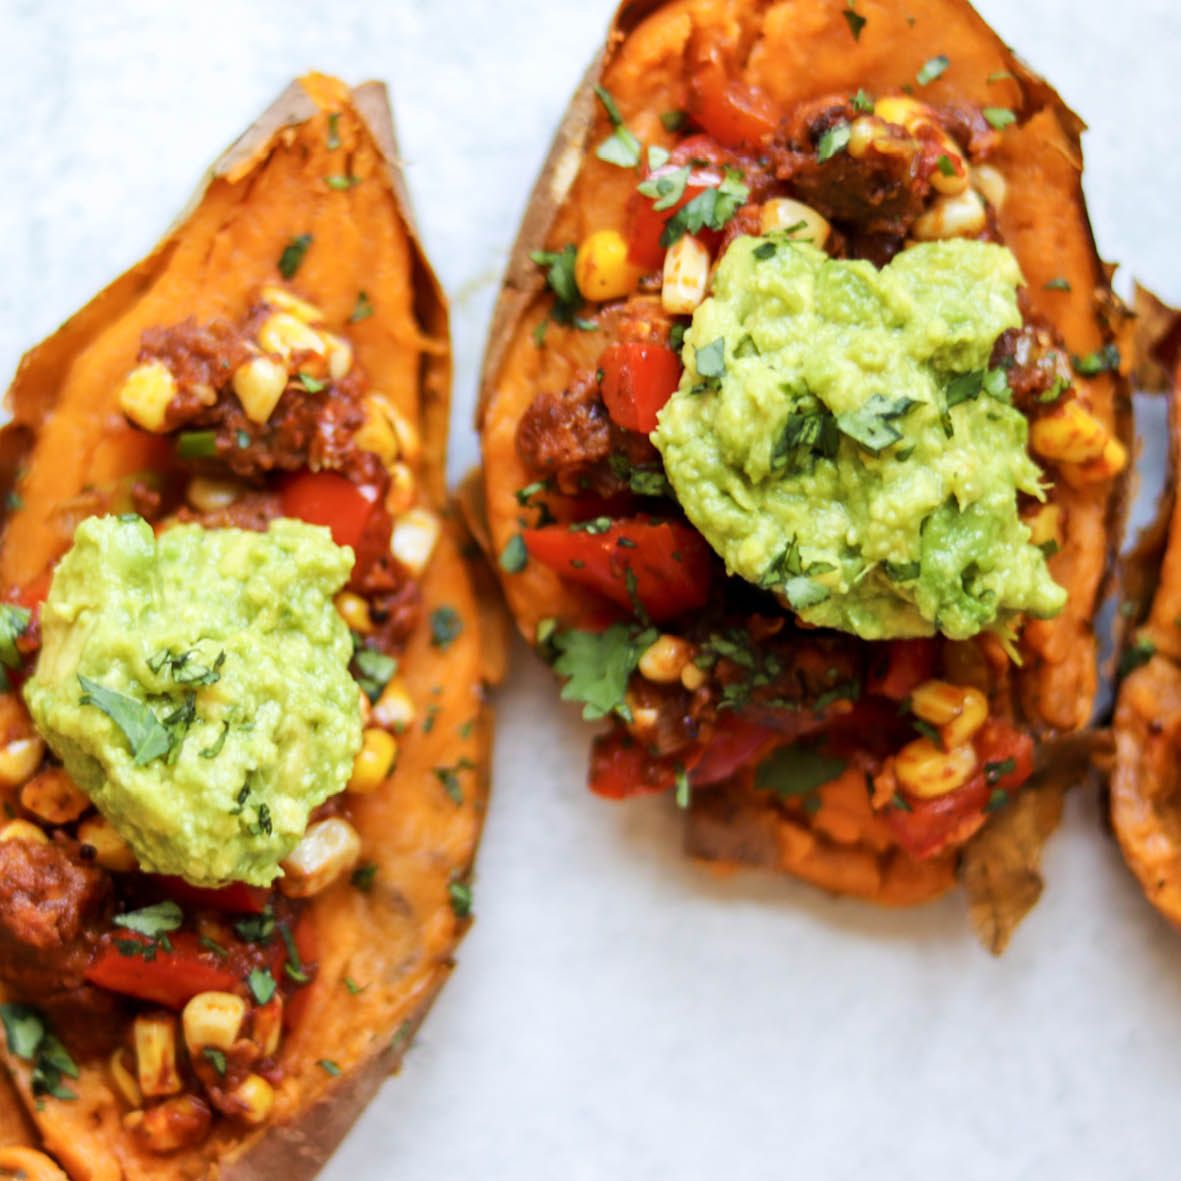 Stuffed_Sweet_Potatoes.jpg